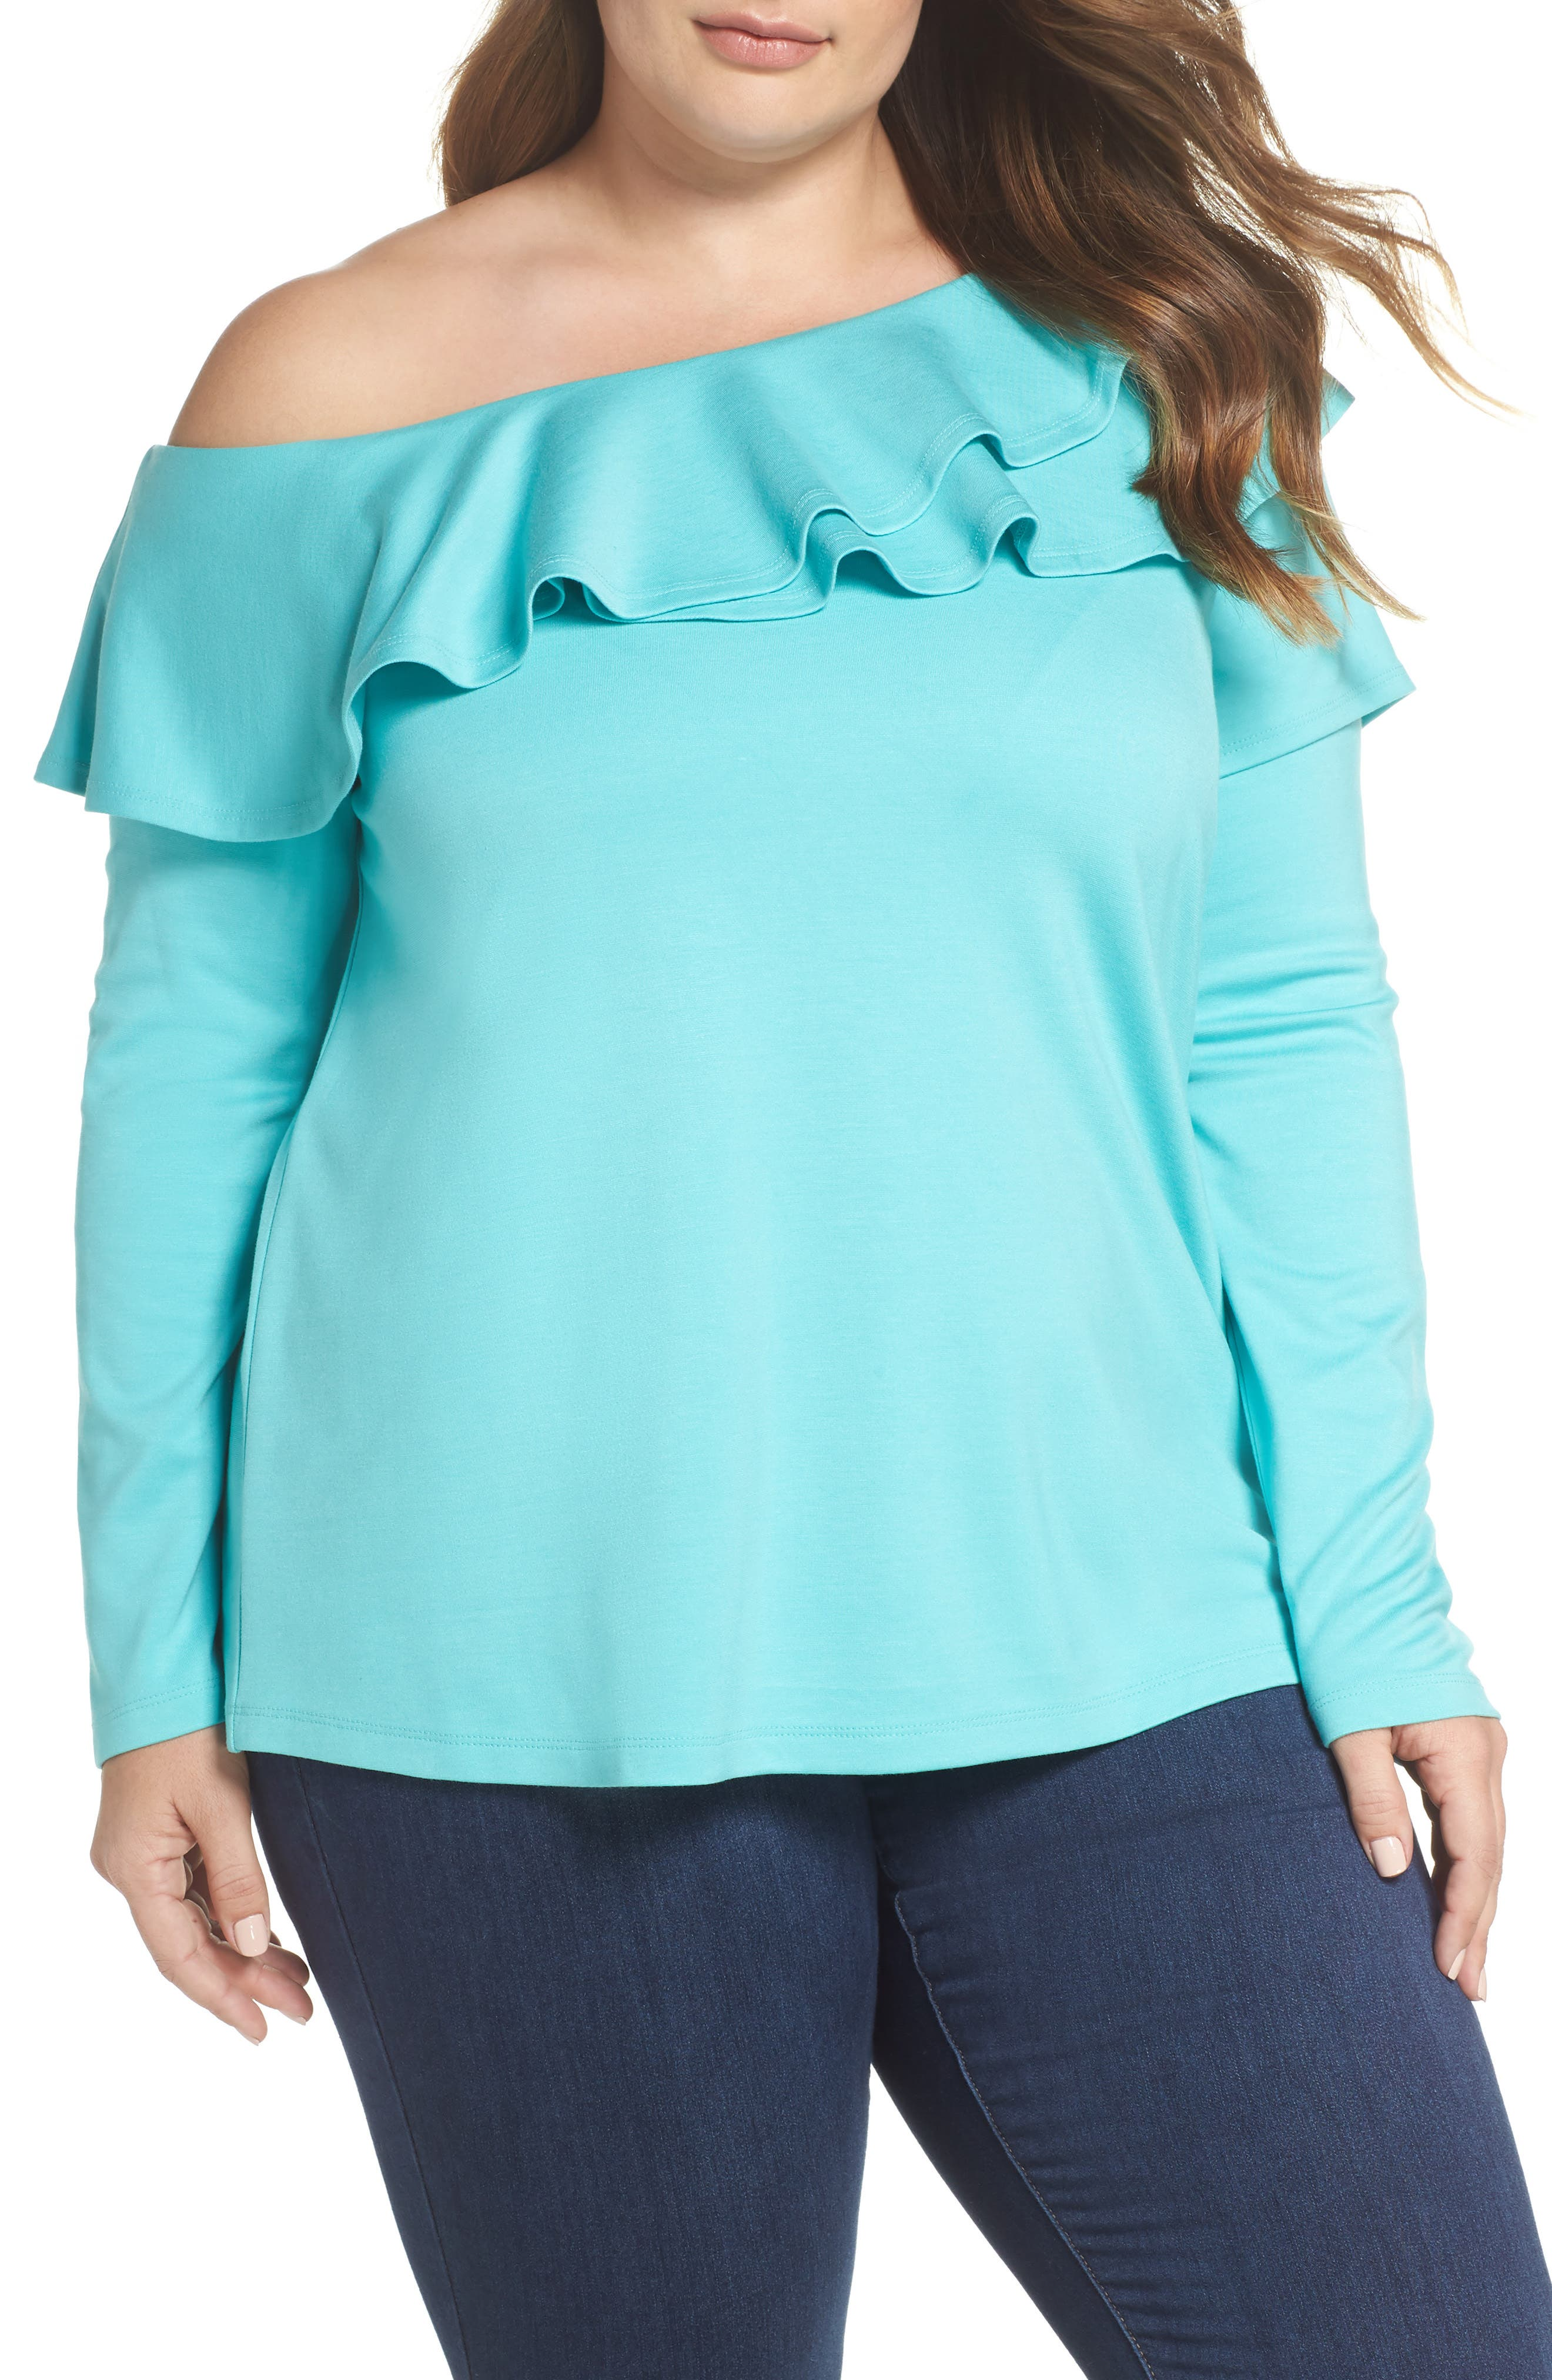 x Living in Yellow Elizabeth One-Shoulder Ruffle Top,                             Main thumbnail 2, color,